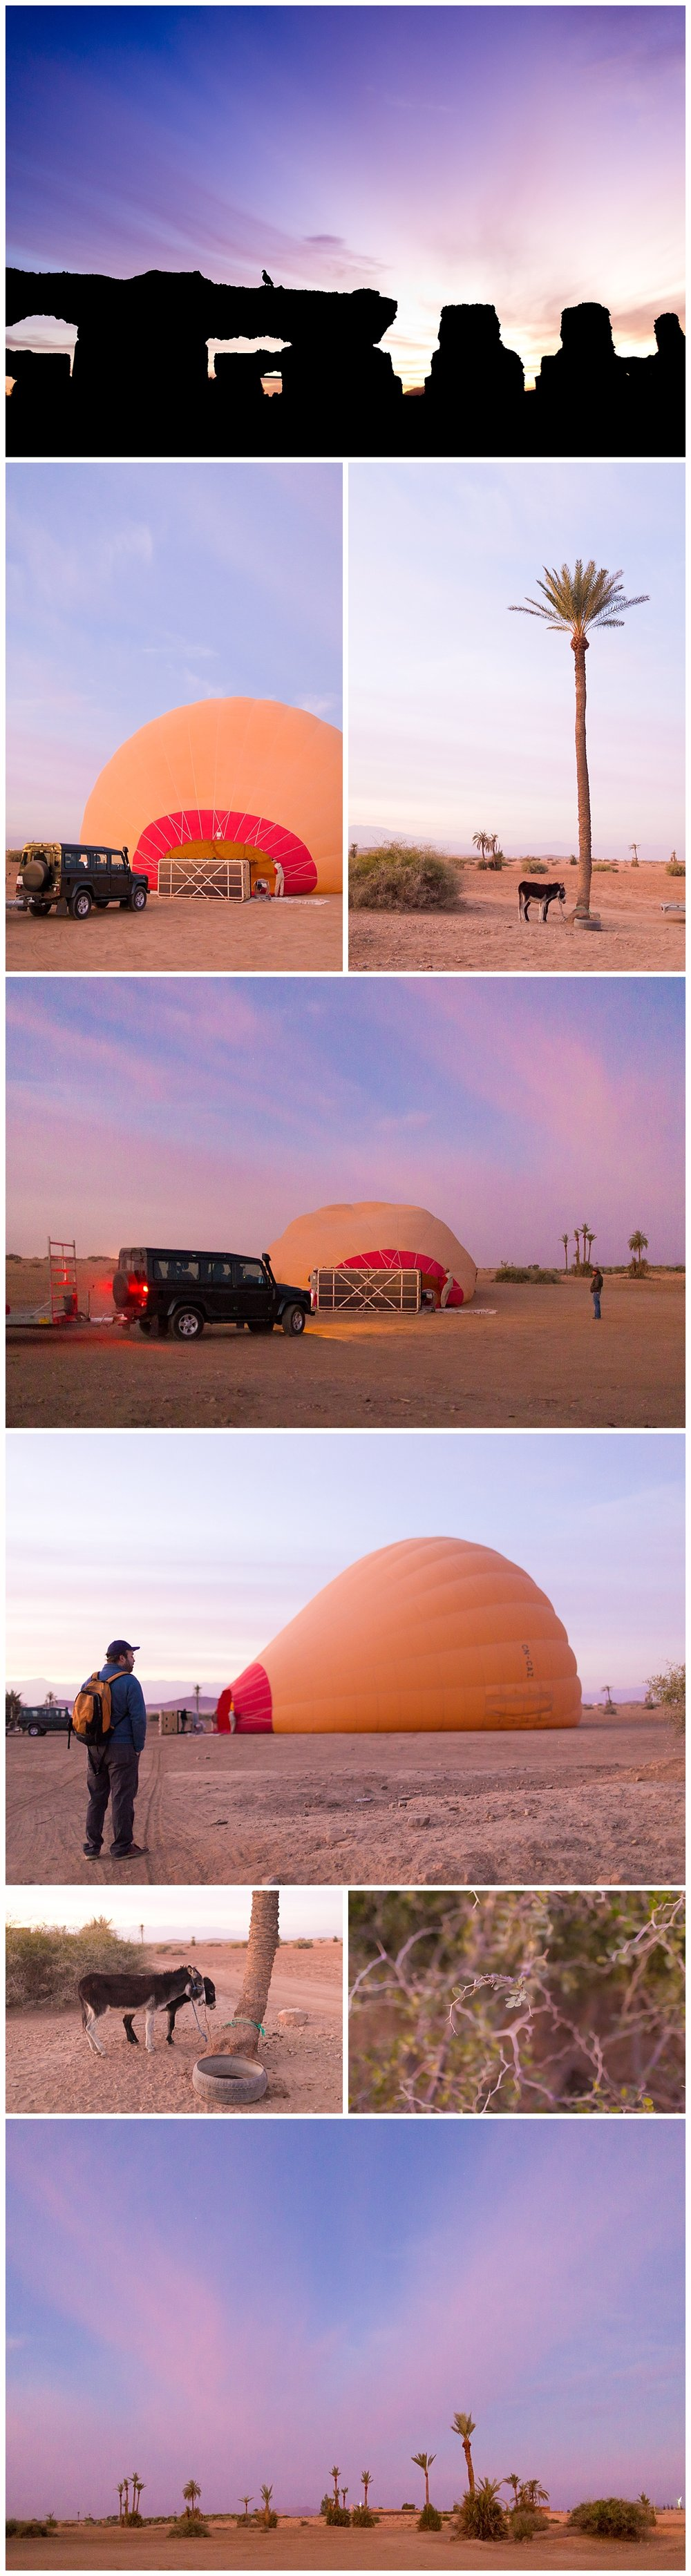 hot air balloon being inflated in the desert - Morocco travel blog